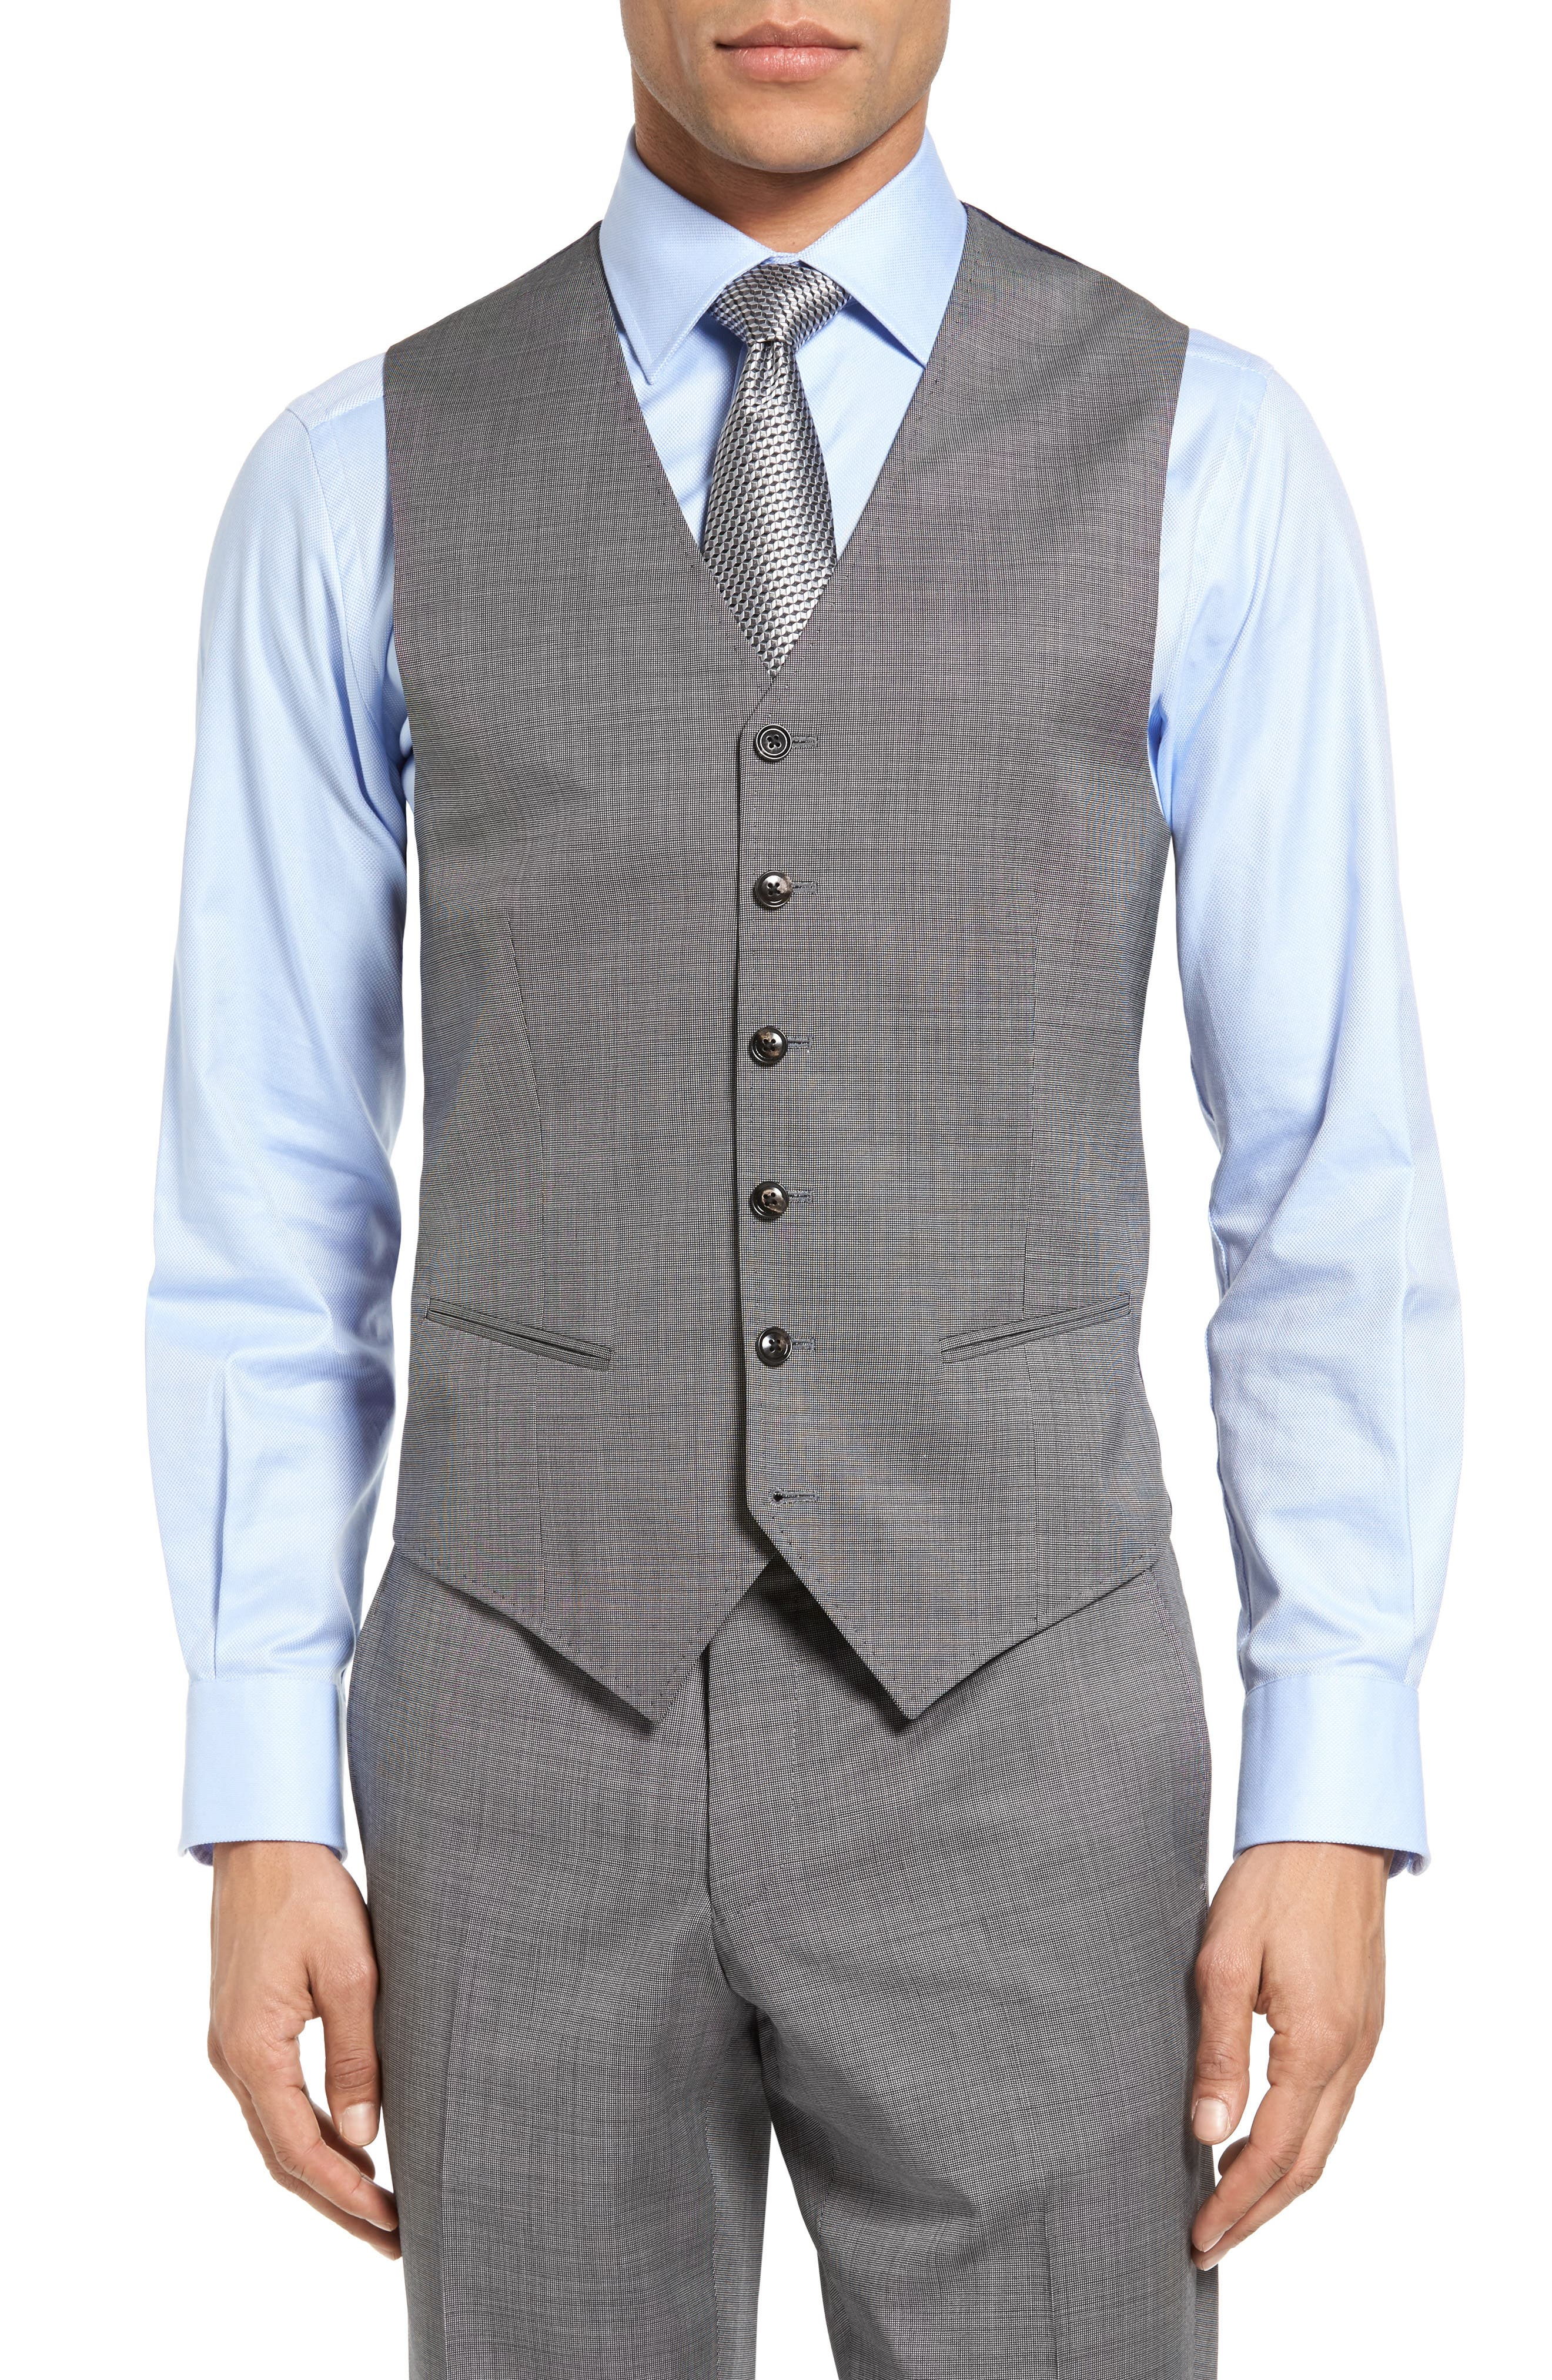 Jones Trim Fit Wool Vest,                             Main thumbnail 1, color,                             Light Grey